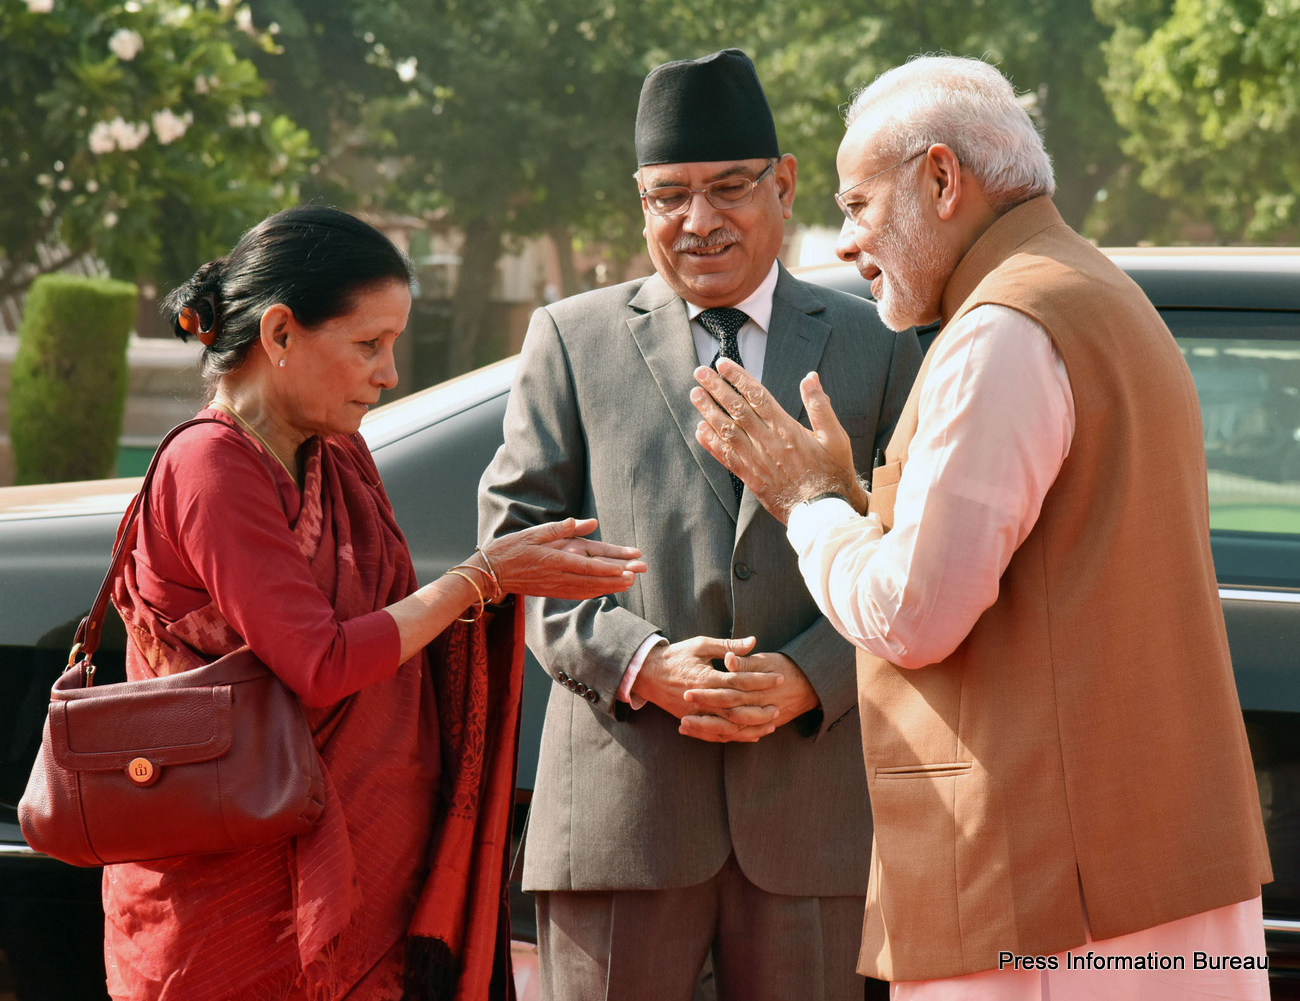 The Prime Minister of Nepal, Mr. Pushpa Kamal Dahal being received by the Prime Minister, Shri Narendra Modi, at the Ceremonial Reception, at Rashtrapati Bhavan, in New Delhi on September 16, 2016.